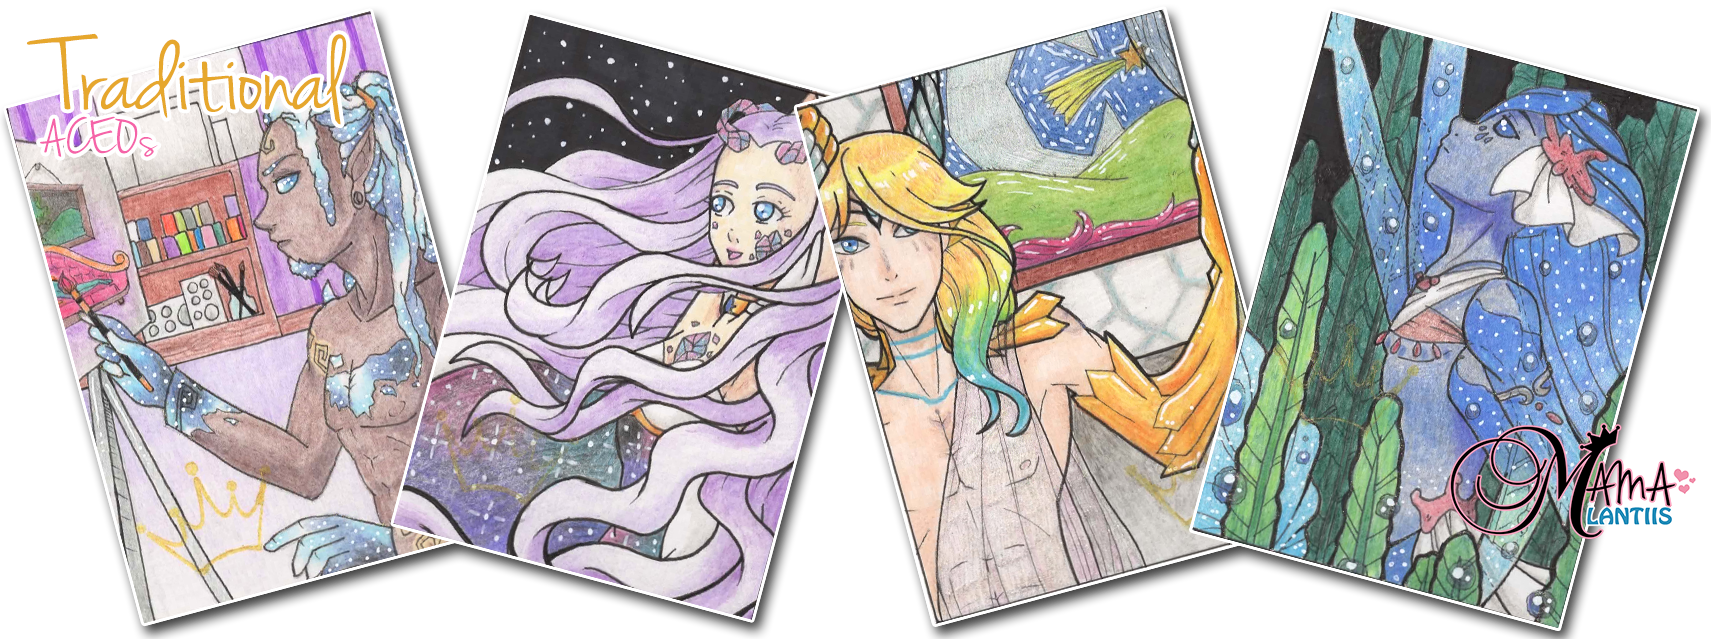 character banner3